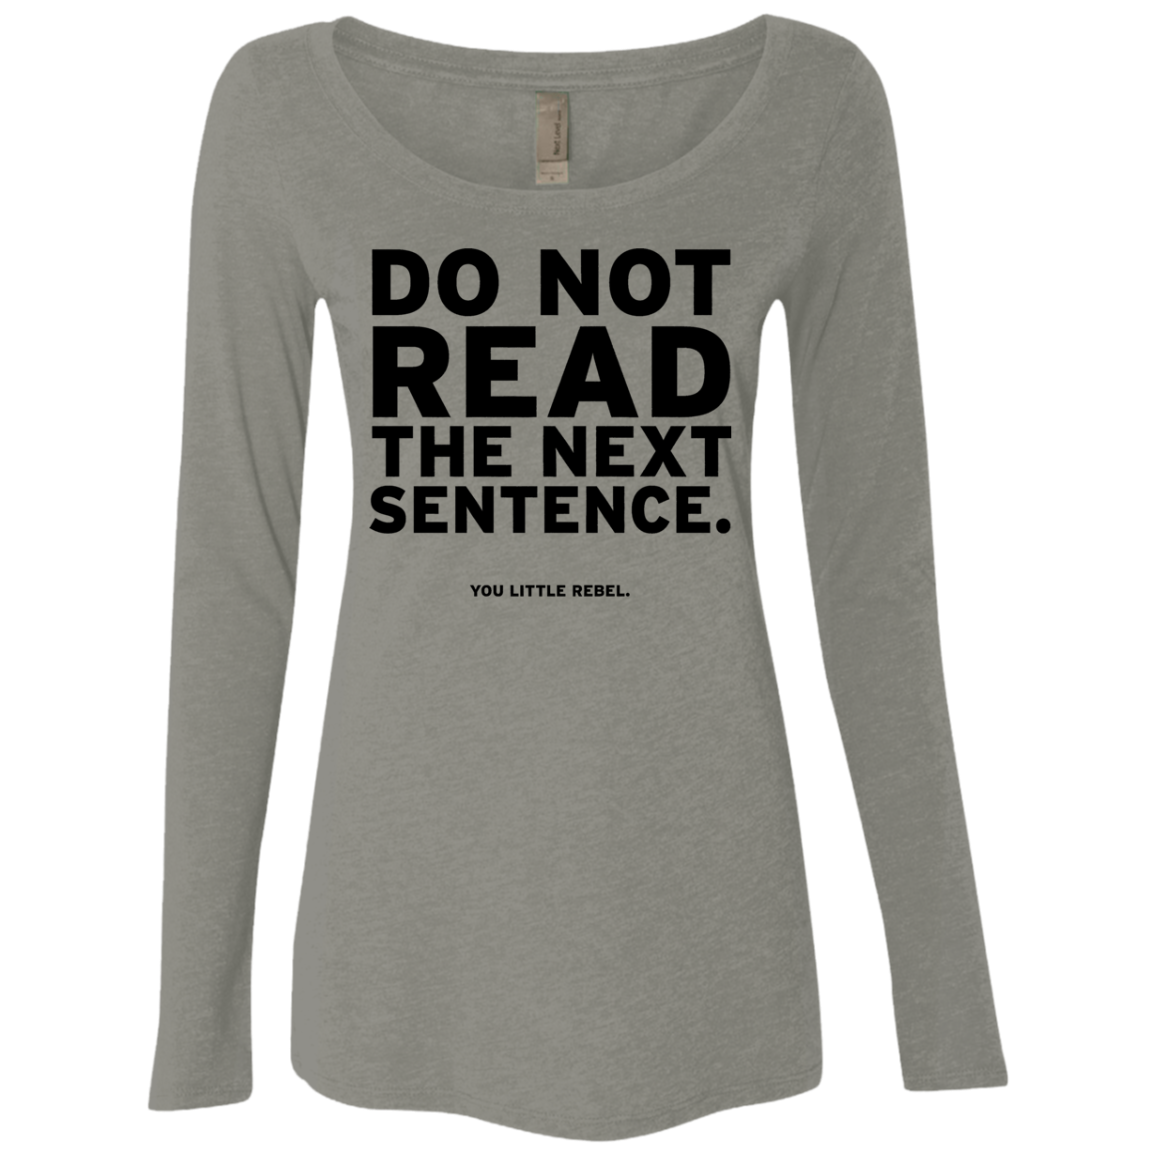 Do Not Read the Next Sentence Women's Long Sleeve Tee